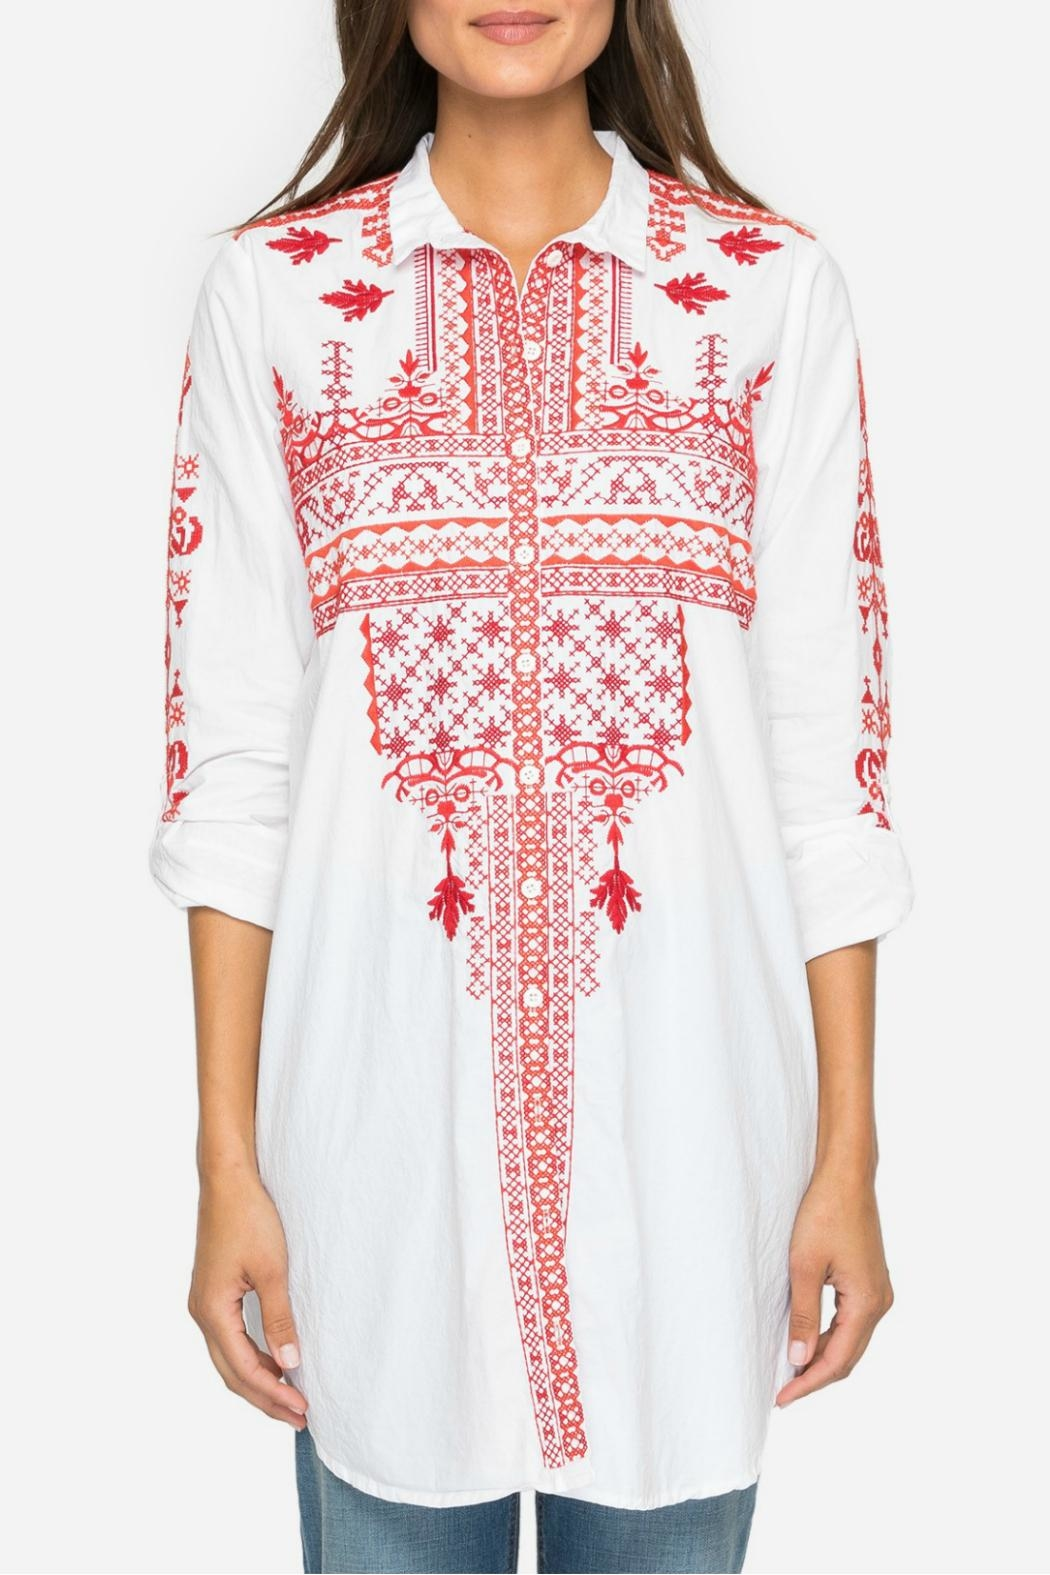 Johnny Was Embroidered Tunic Shirt - Main Image